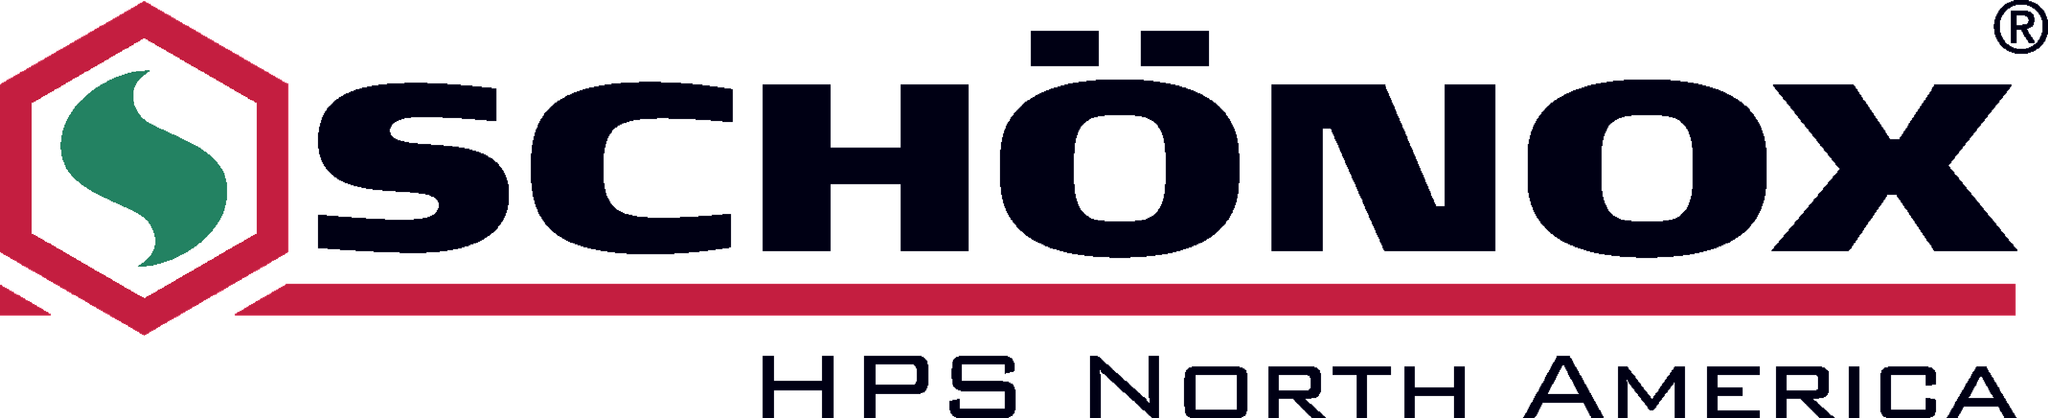 Schönox HPS North America, Inc.